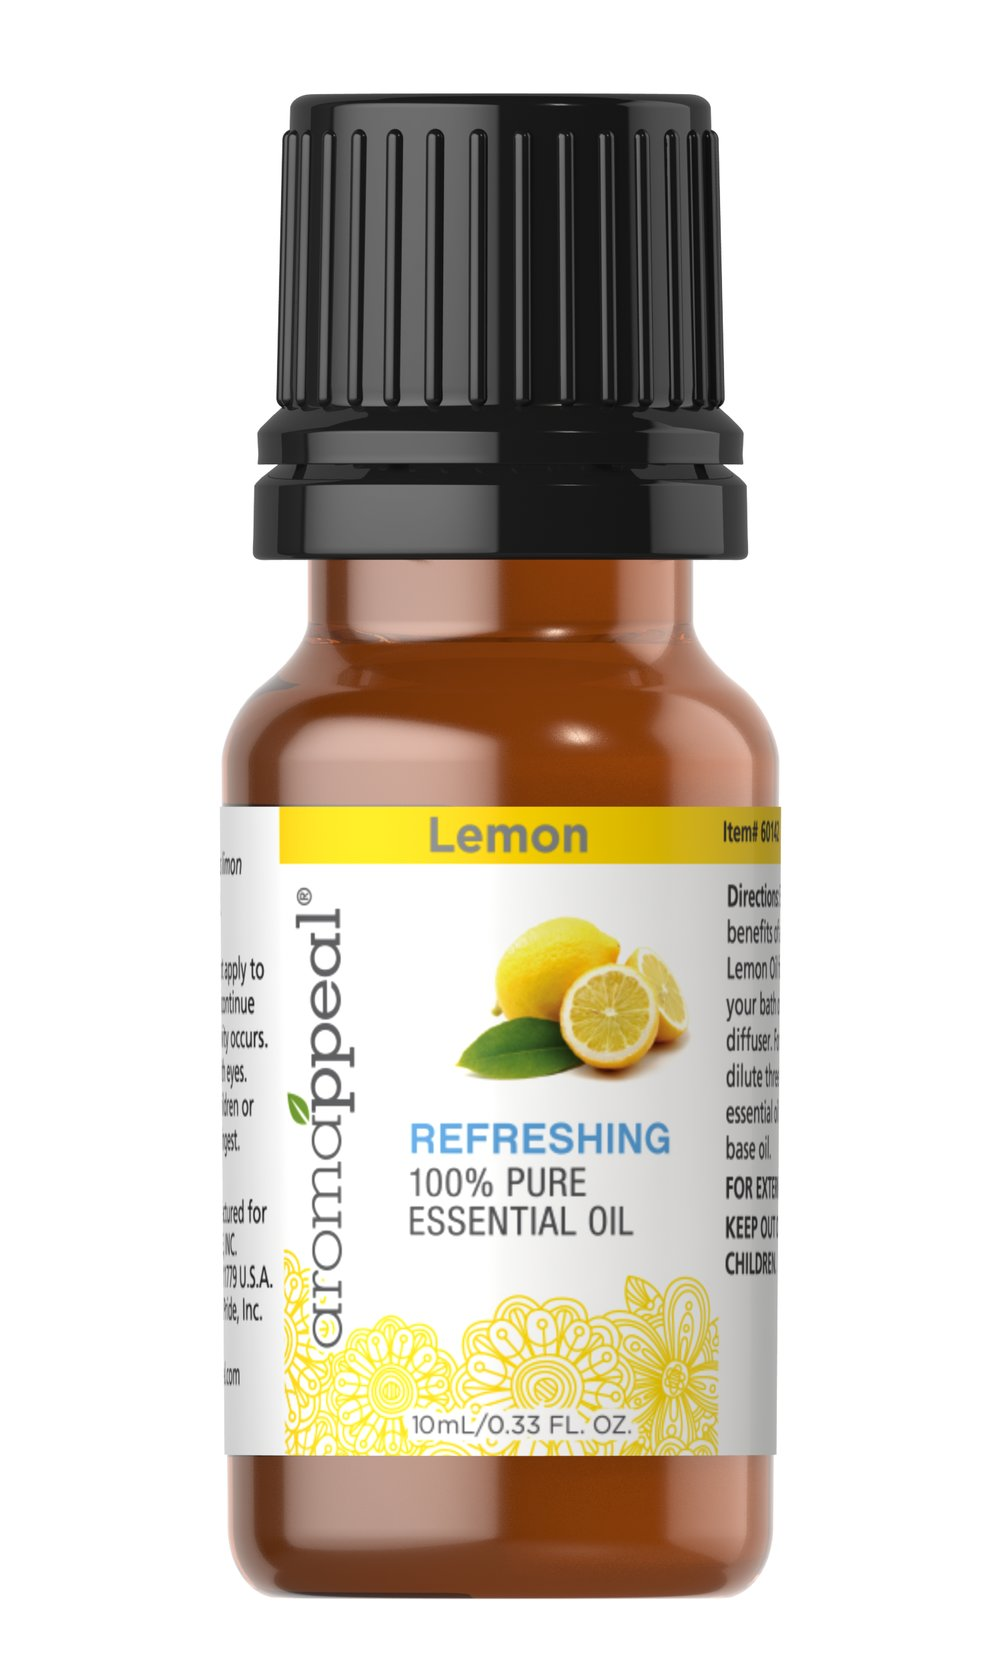 Lemon 100% Pure Essential Oil